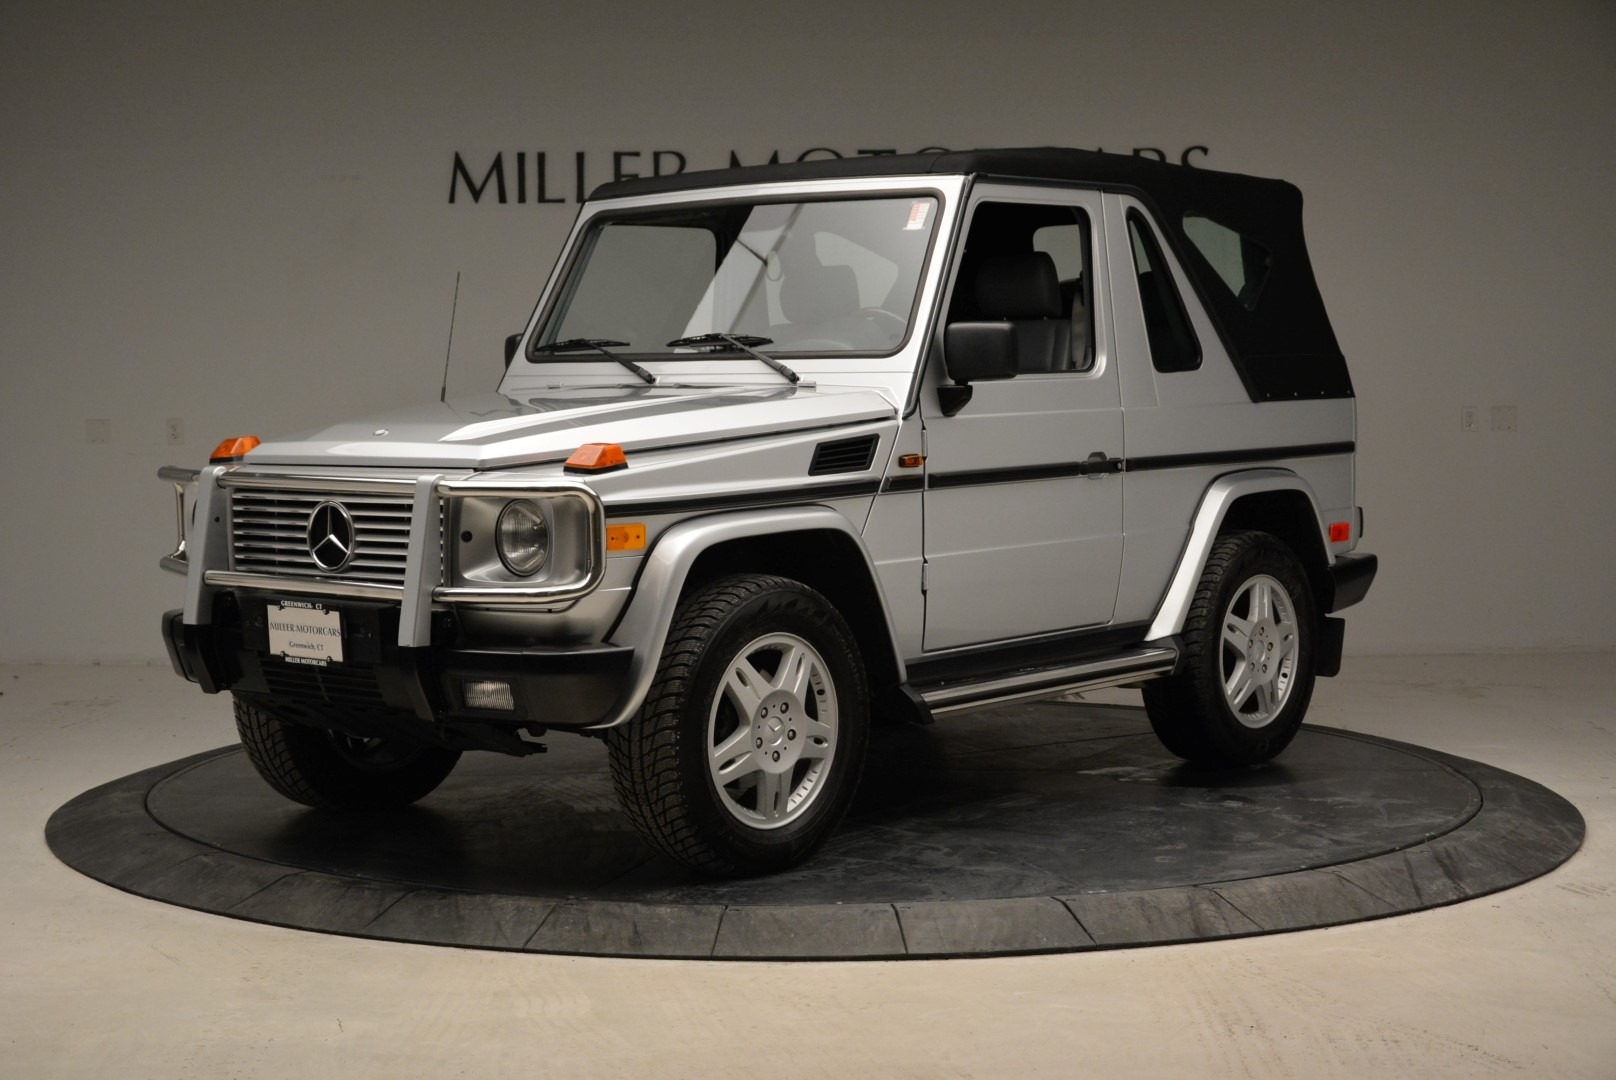 Used 1999 Mercedes Benz G500 Cabriolet For Sale In Greenwich, CT 1961_p13